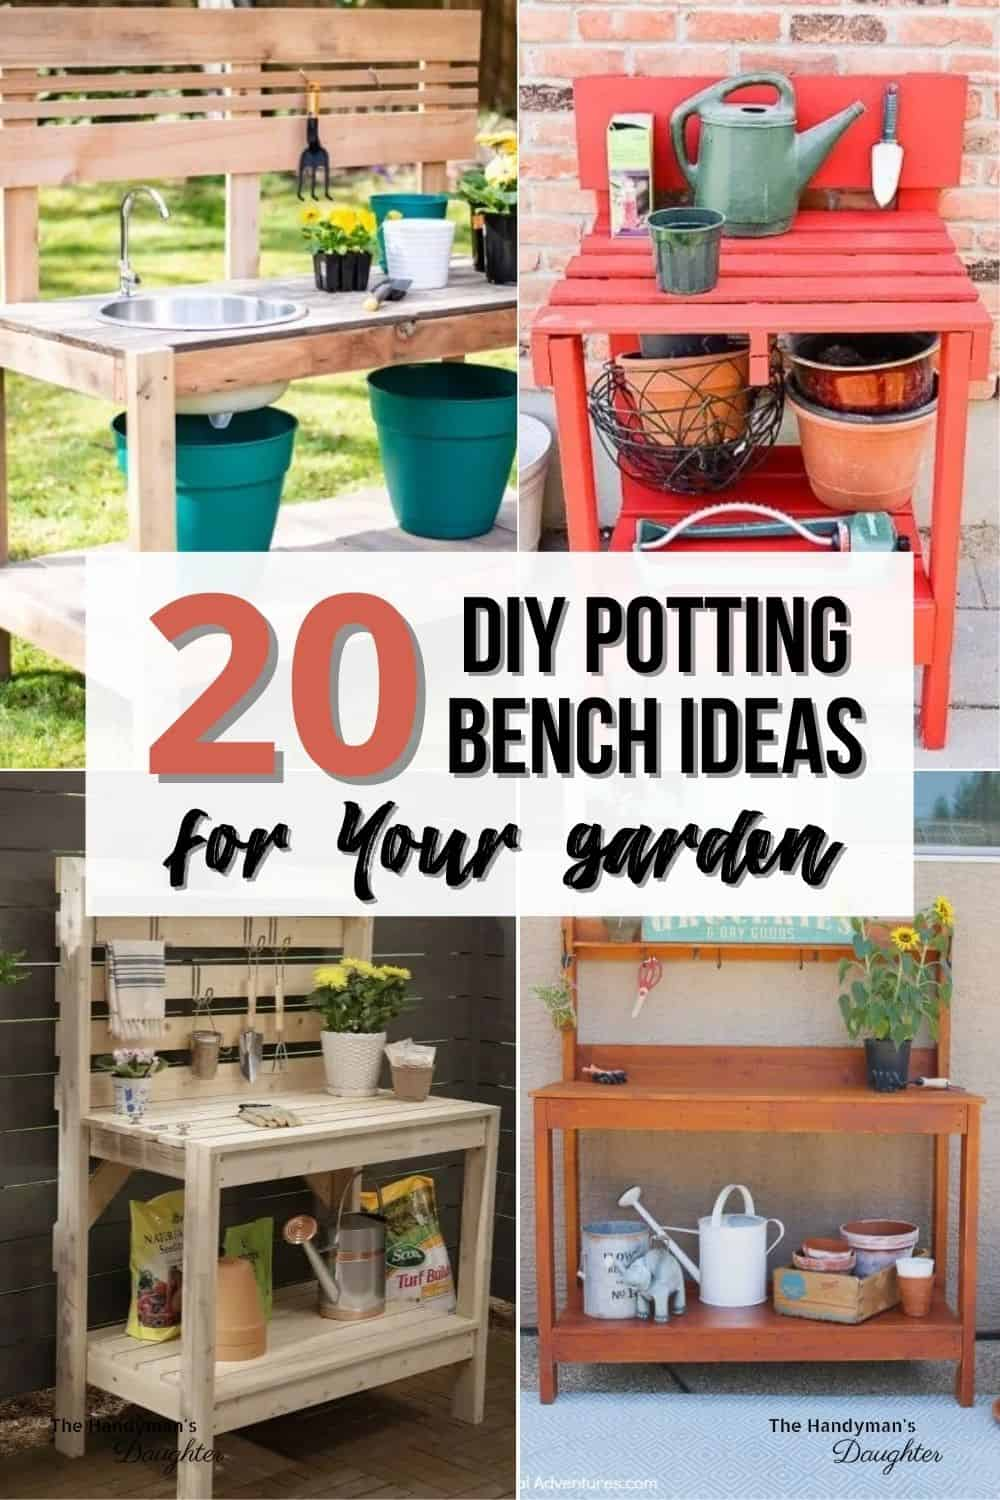 image collage of DIY potting benches